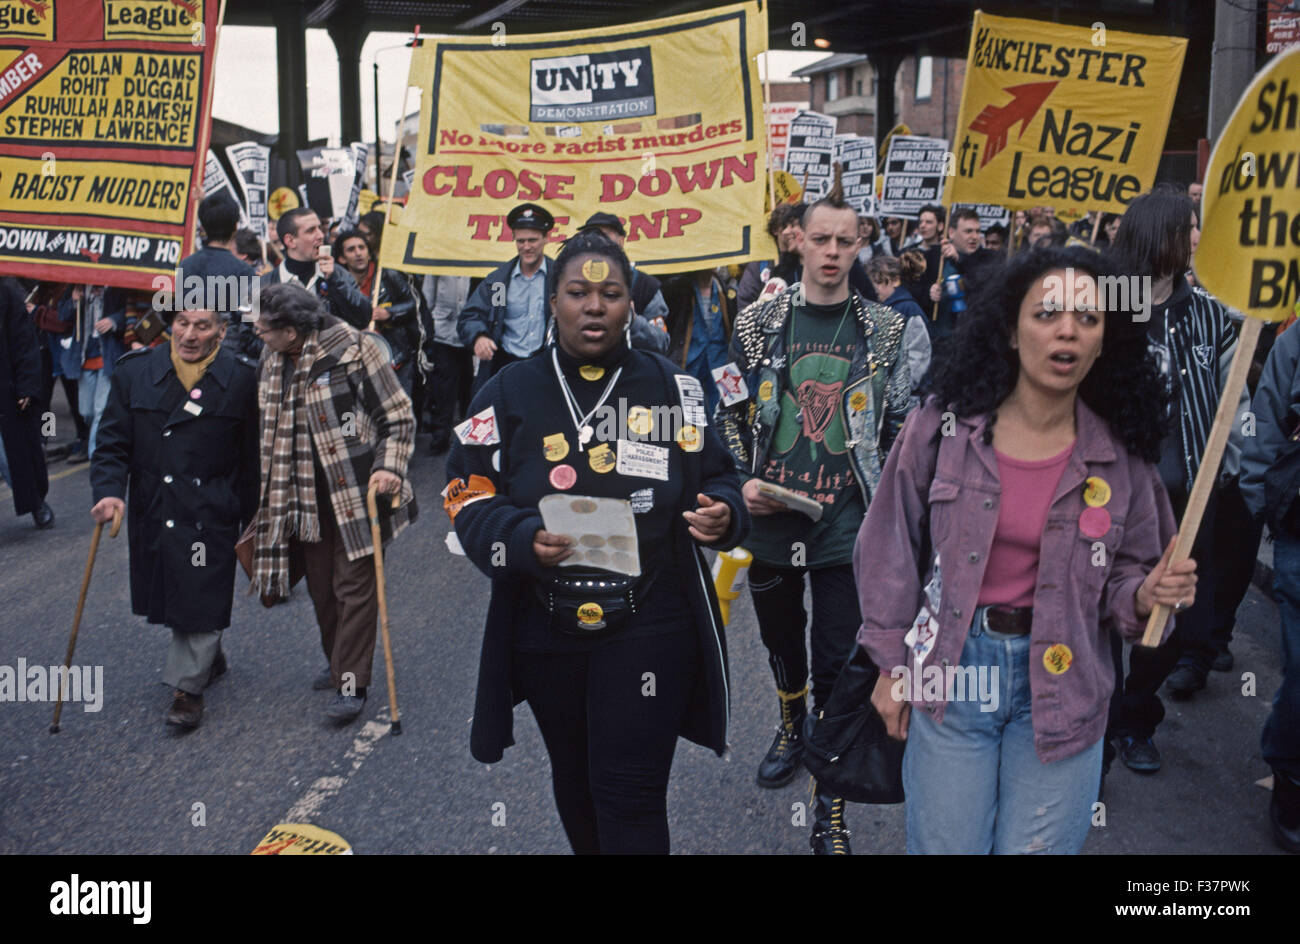 Anti racism march in London 1990's - Stock Image